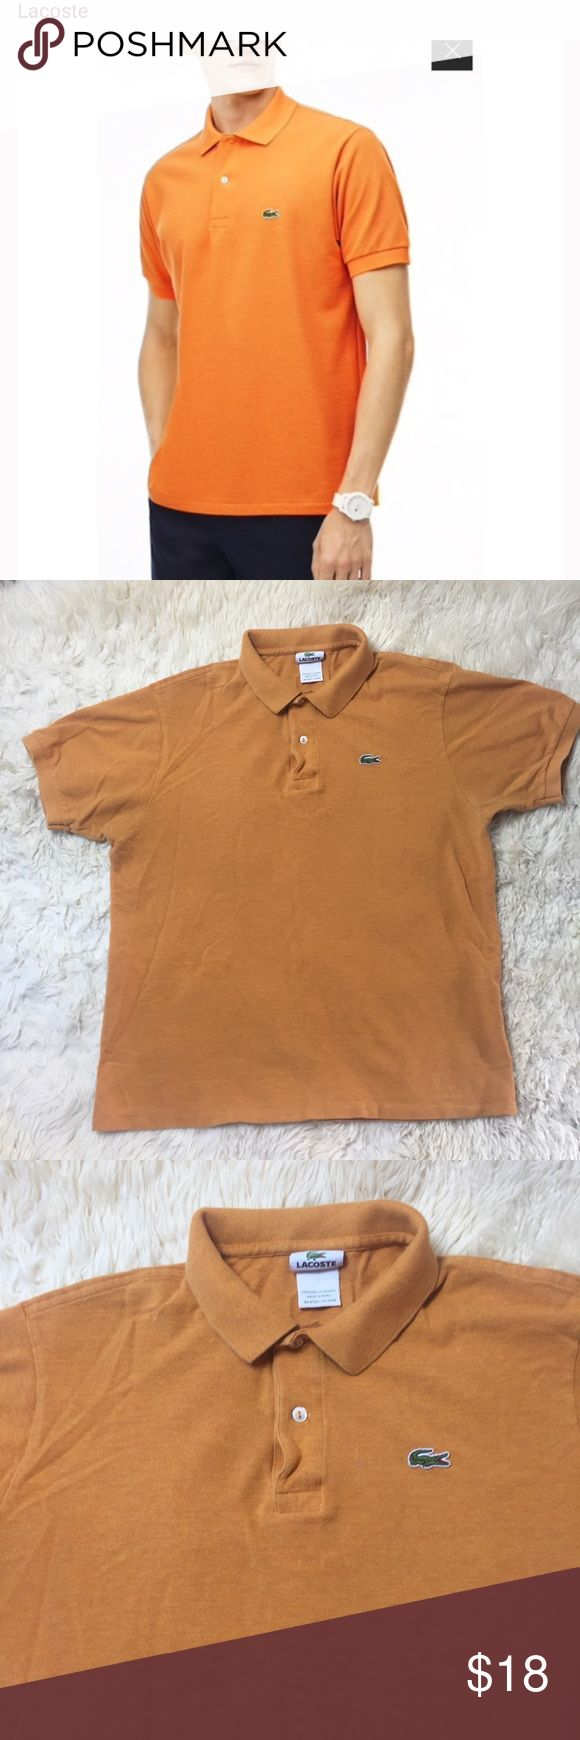 LACOSTE POLO SHIRT 6 Pre owned, orange, LACOSTE polo short sleeve shirt.  100%cotton.  Size 6. Good condition, pet/smoke free home Lacoste Shirts Polos